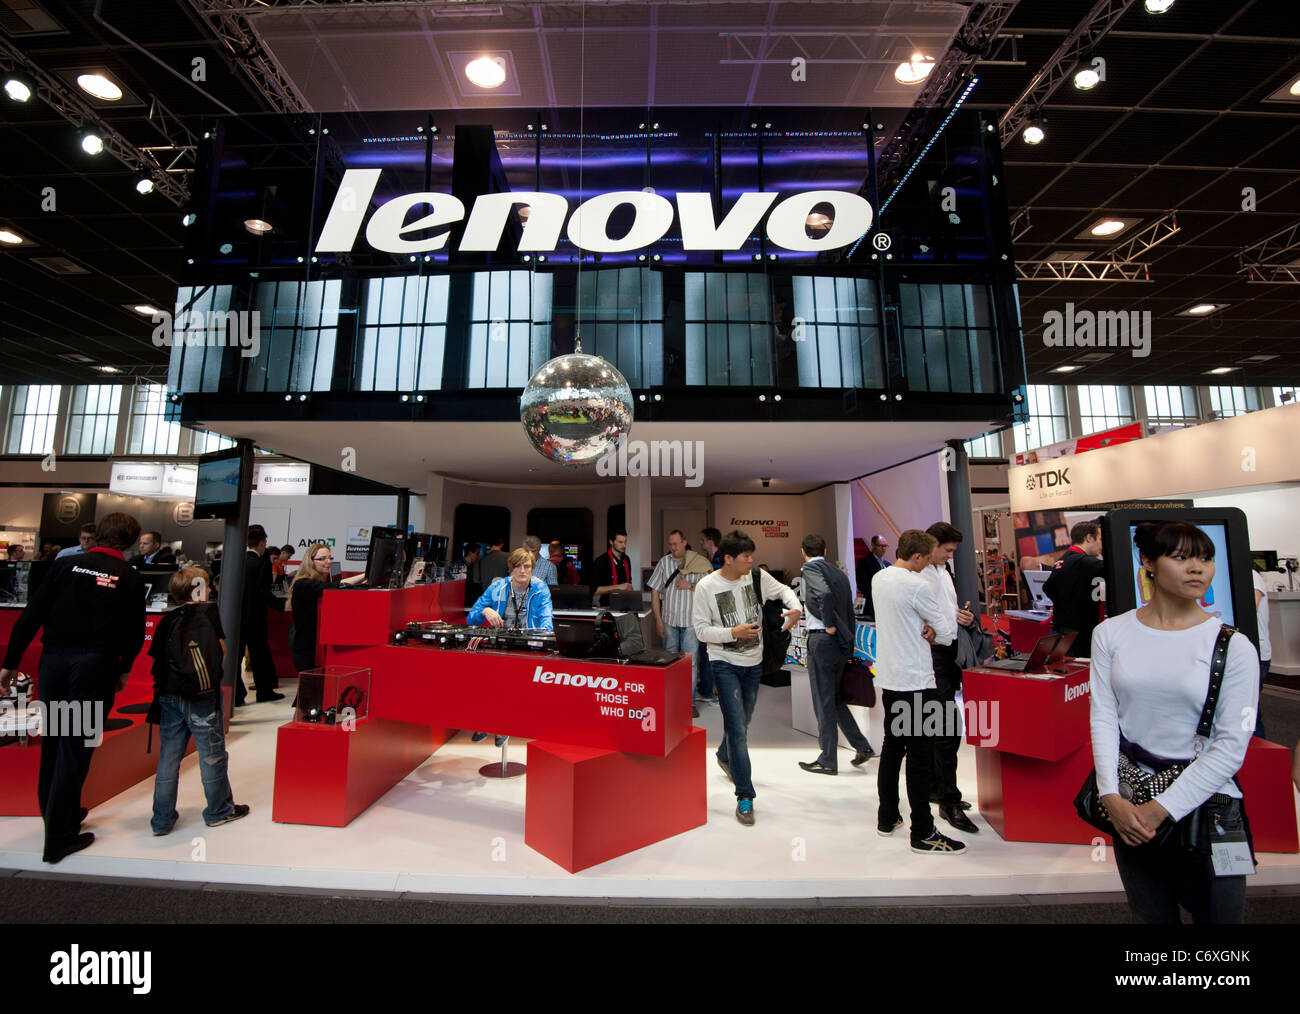 Lenovo syand at IFA consumer electronics trade fair in Berlin Germany 2011 - Stock Image